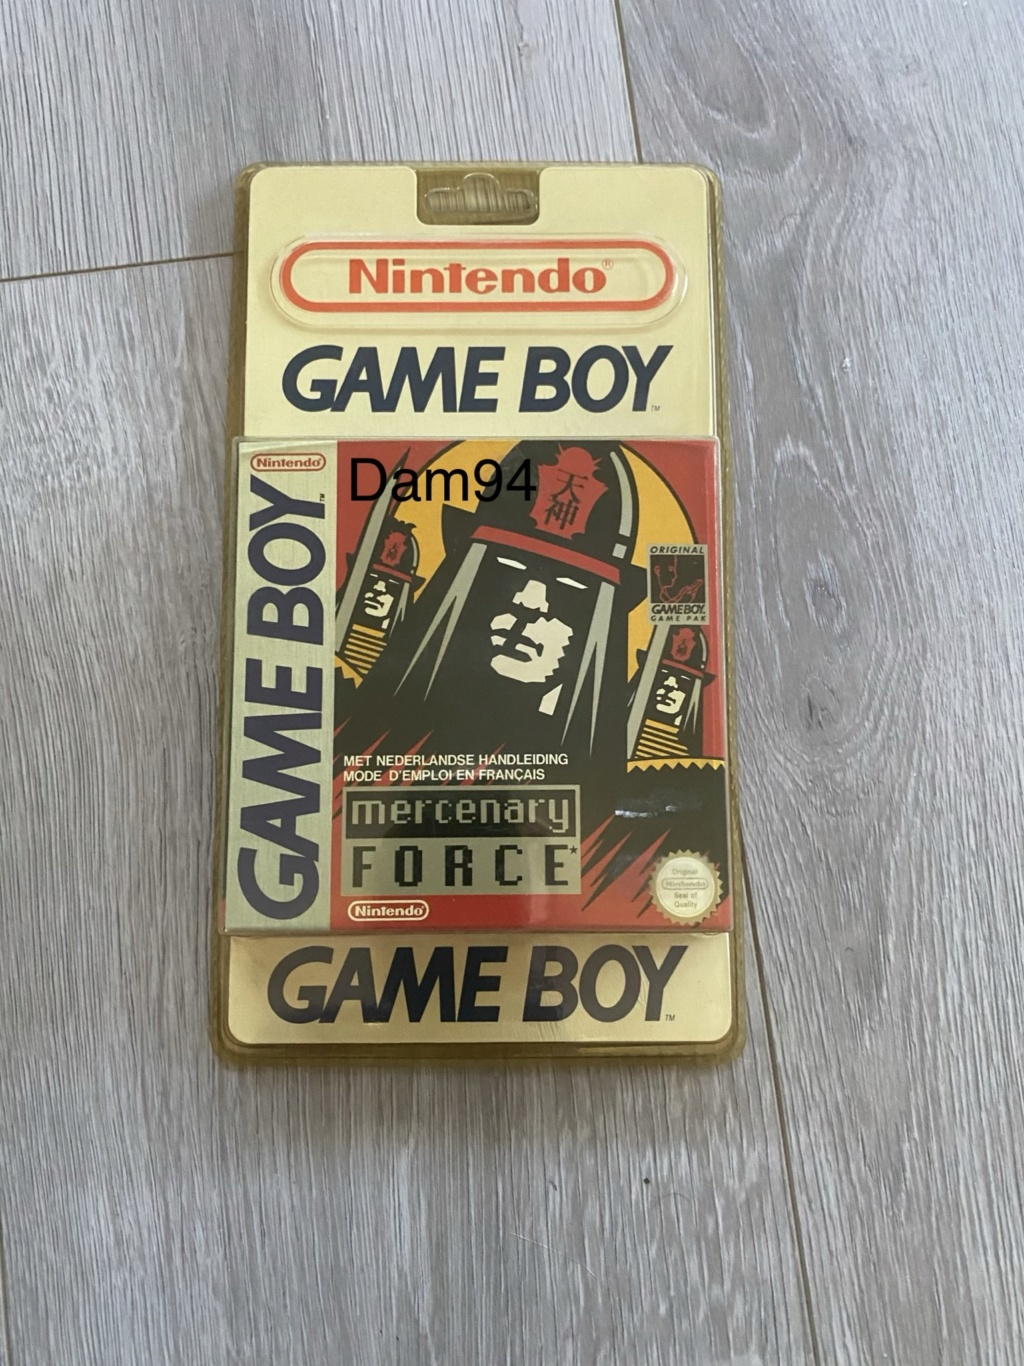 Collection Blisters Rigides Game Boy A2a94e10